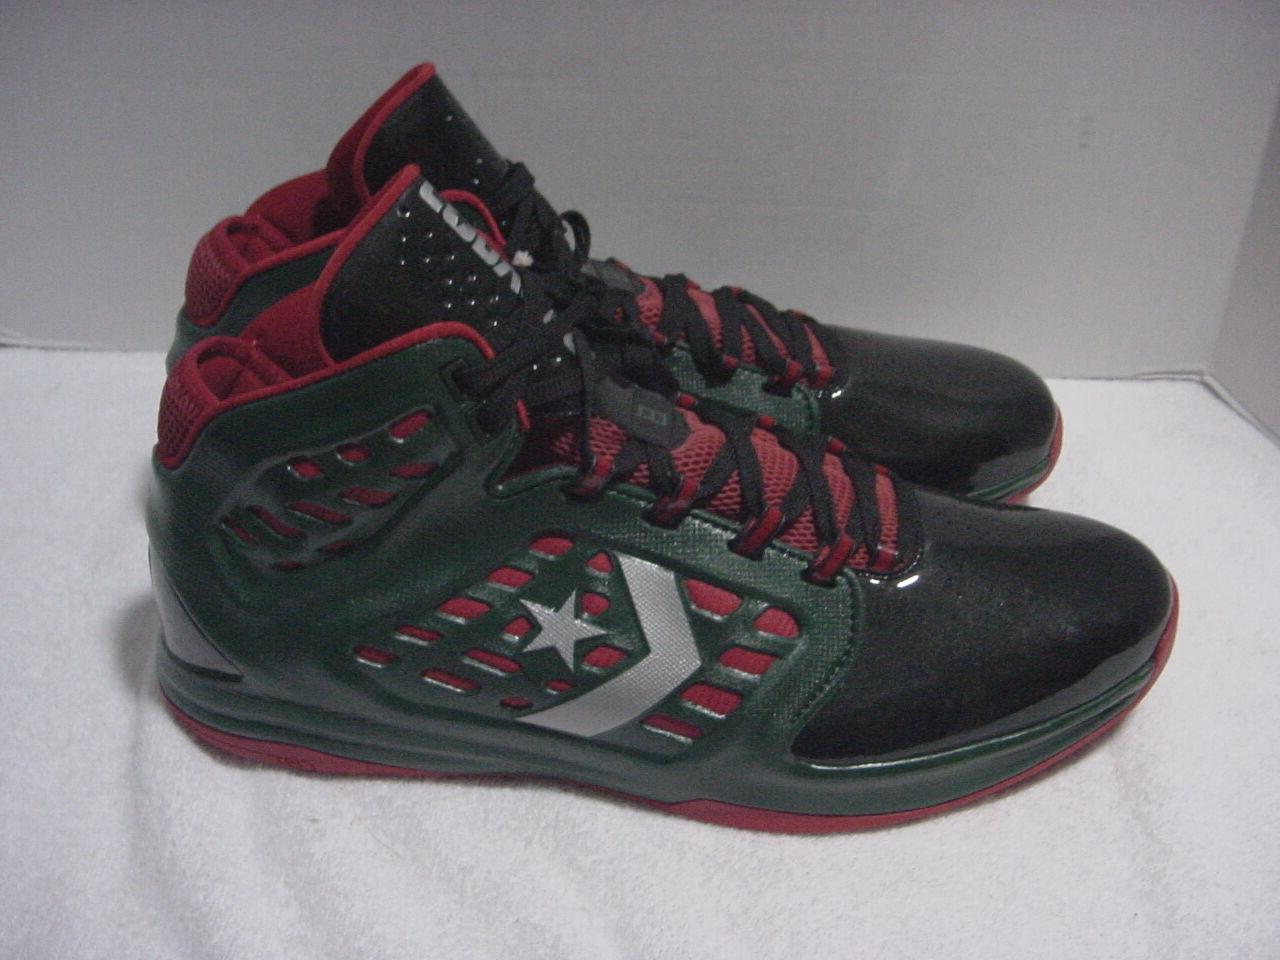 Converse Contain Men's basketball shoes Black and Green